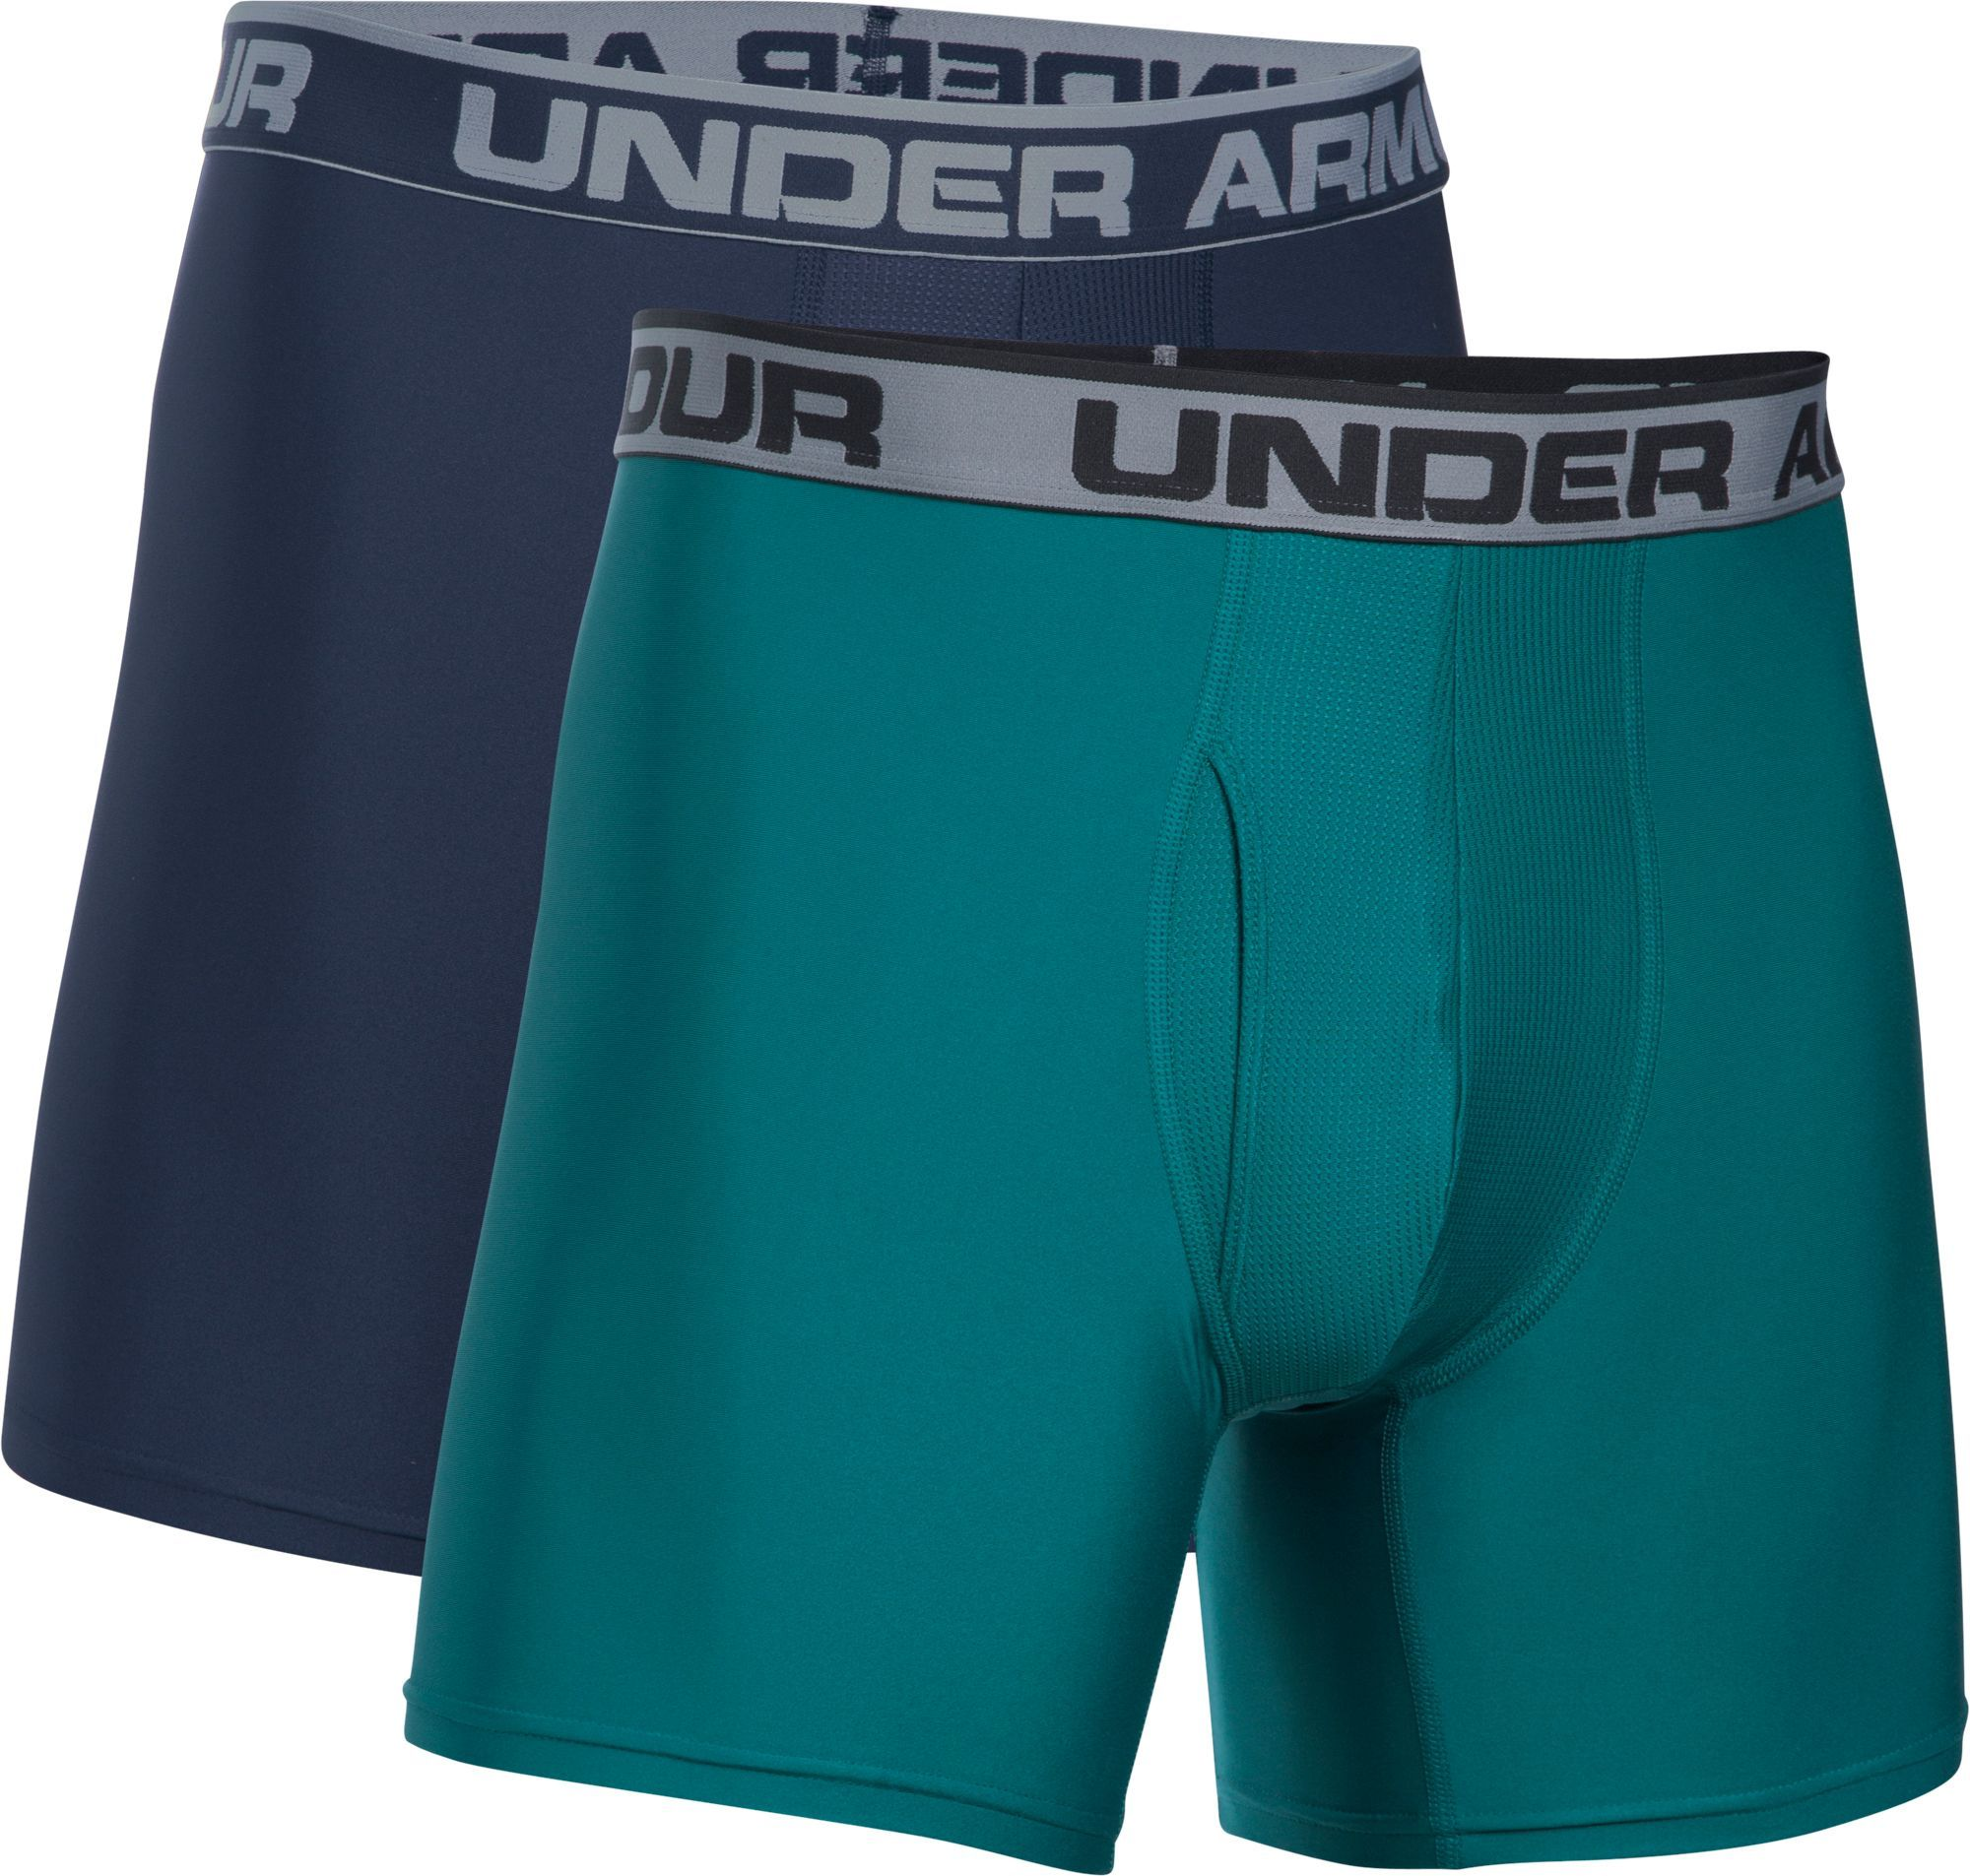 Pack of 2 Shorts Under Armour Boys O-series Boxer Jock